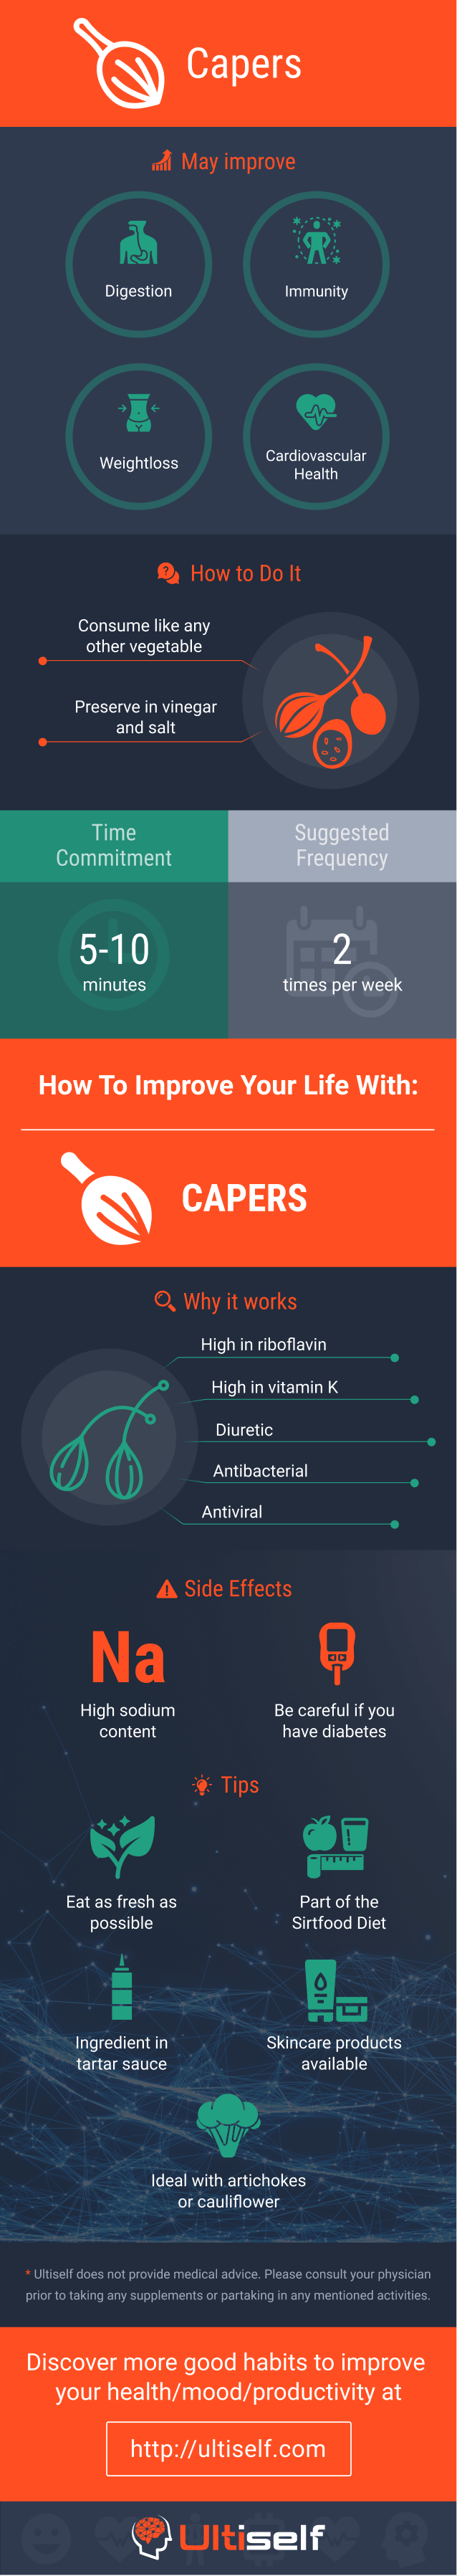 Capers infographic